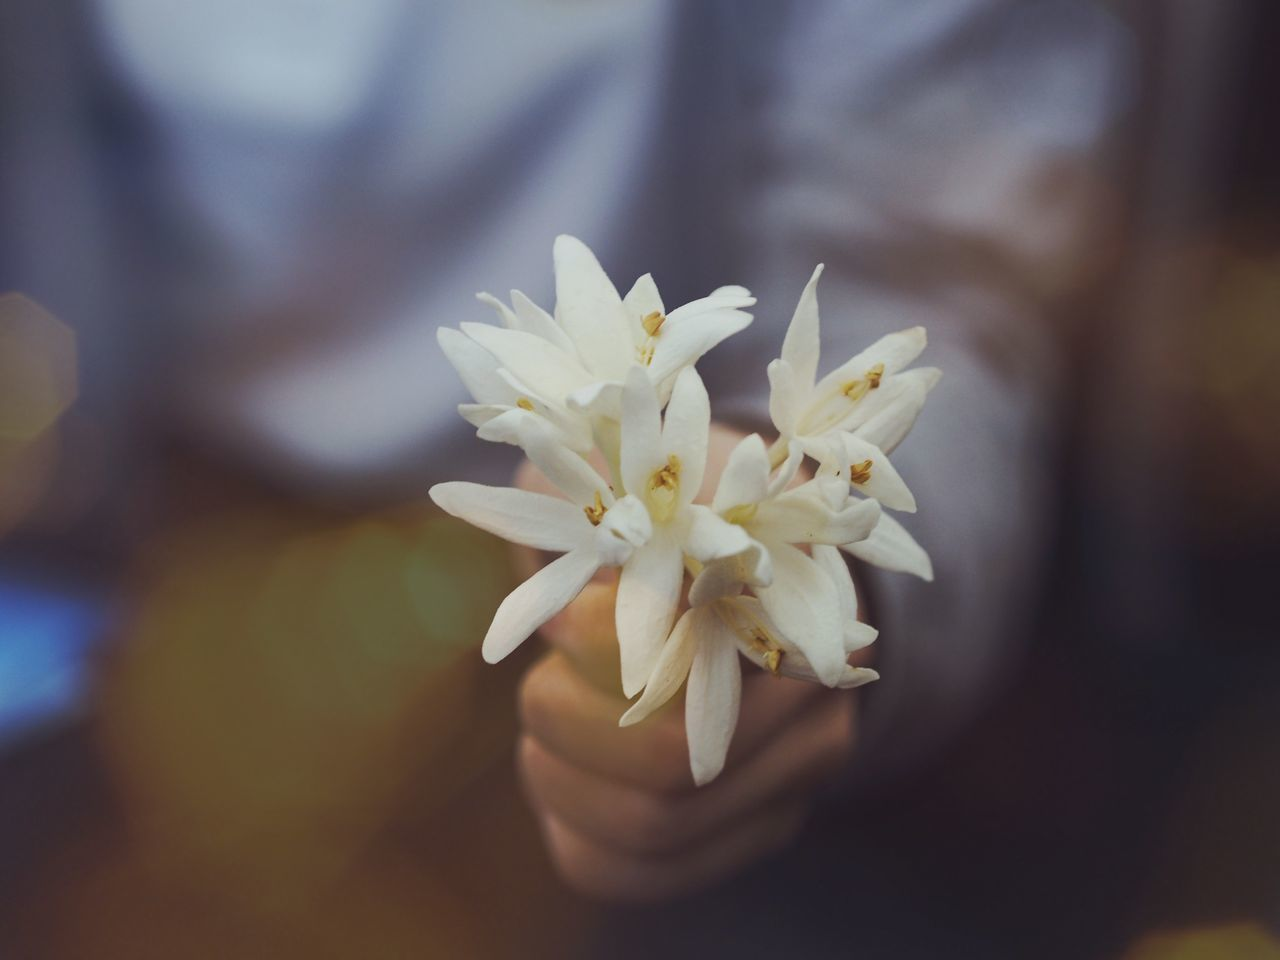 Flower Fragility Blossom Springtime Nature Beauty In Nature Selective Focus Flower Head Close-up Petal White Color Freshness Growth Stamen Day Pastel Colored Outdoors Plant No People Closing